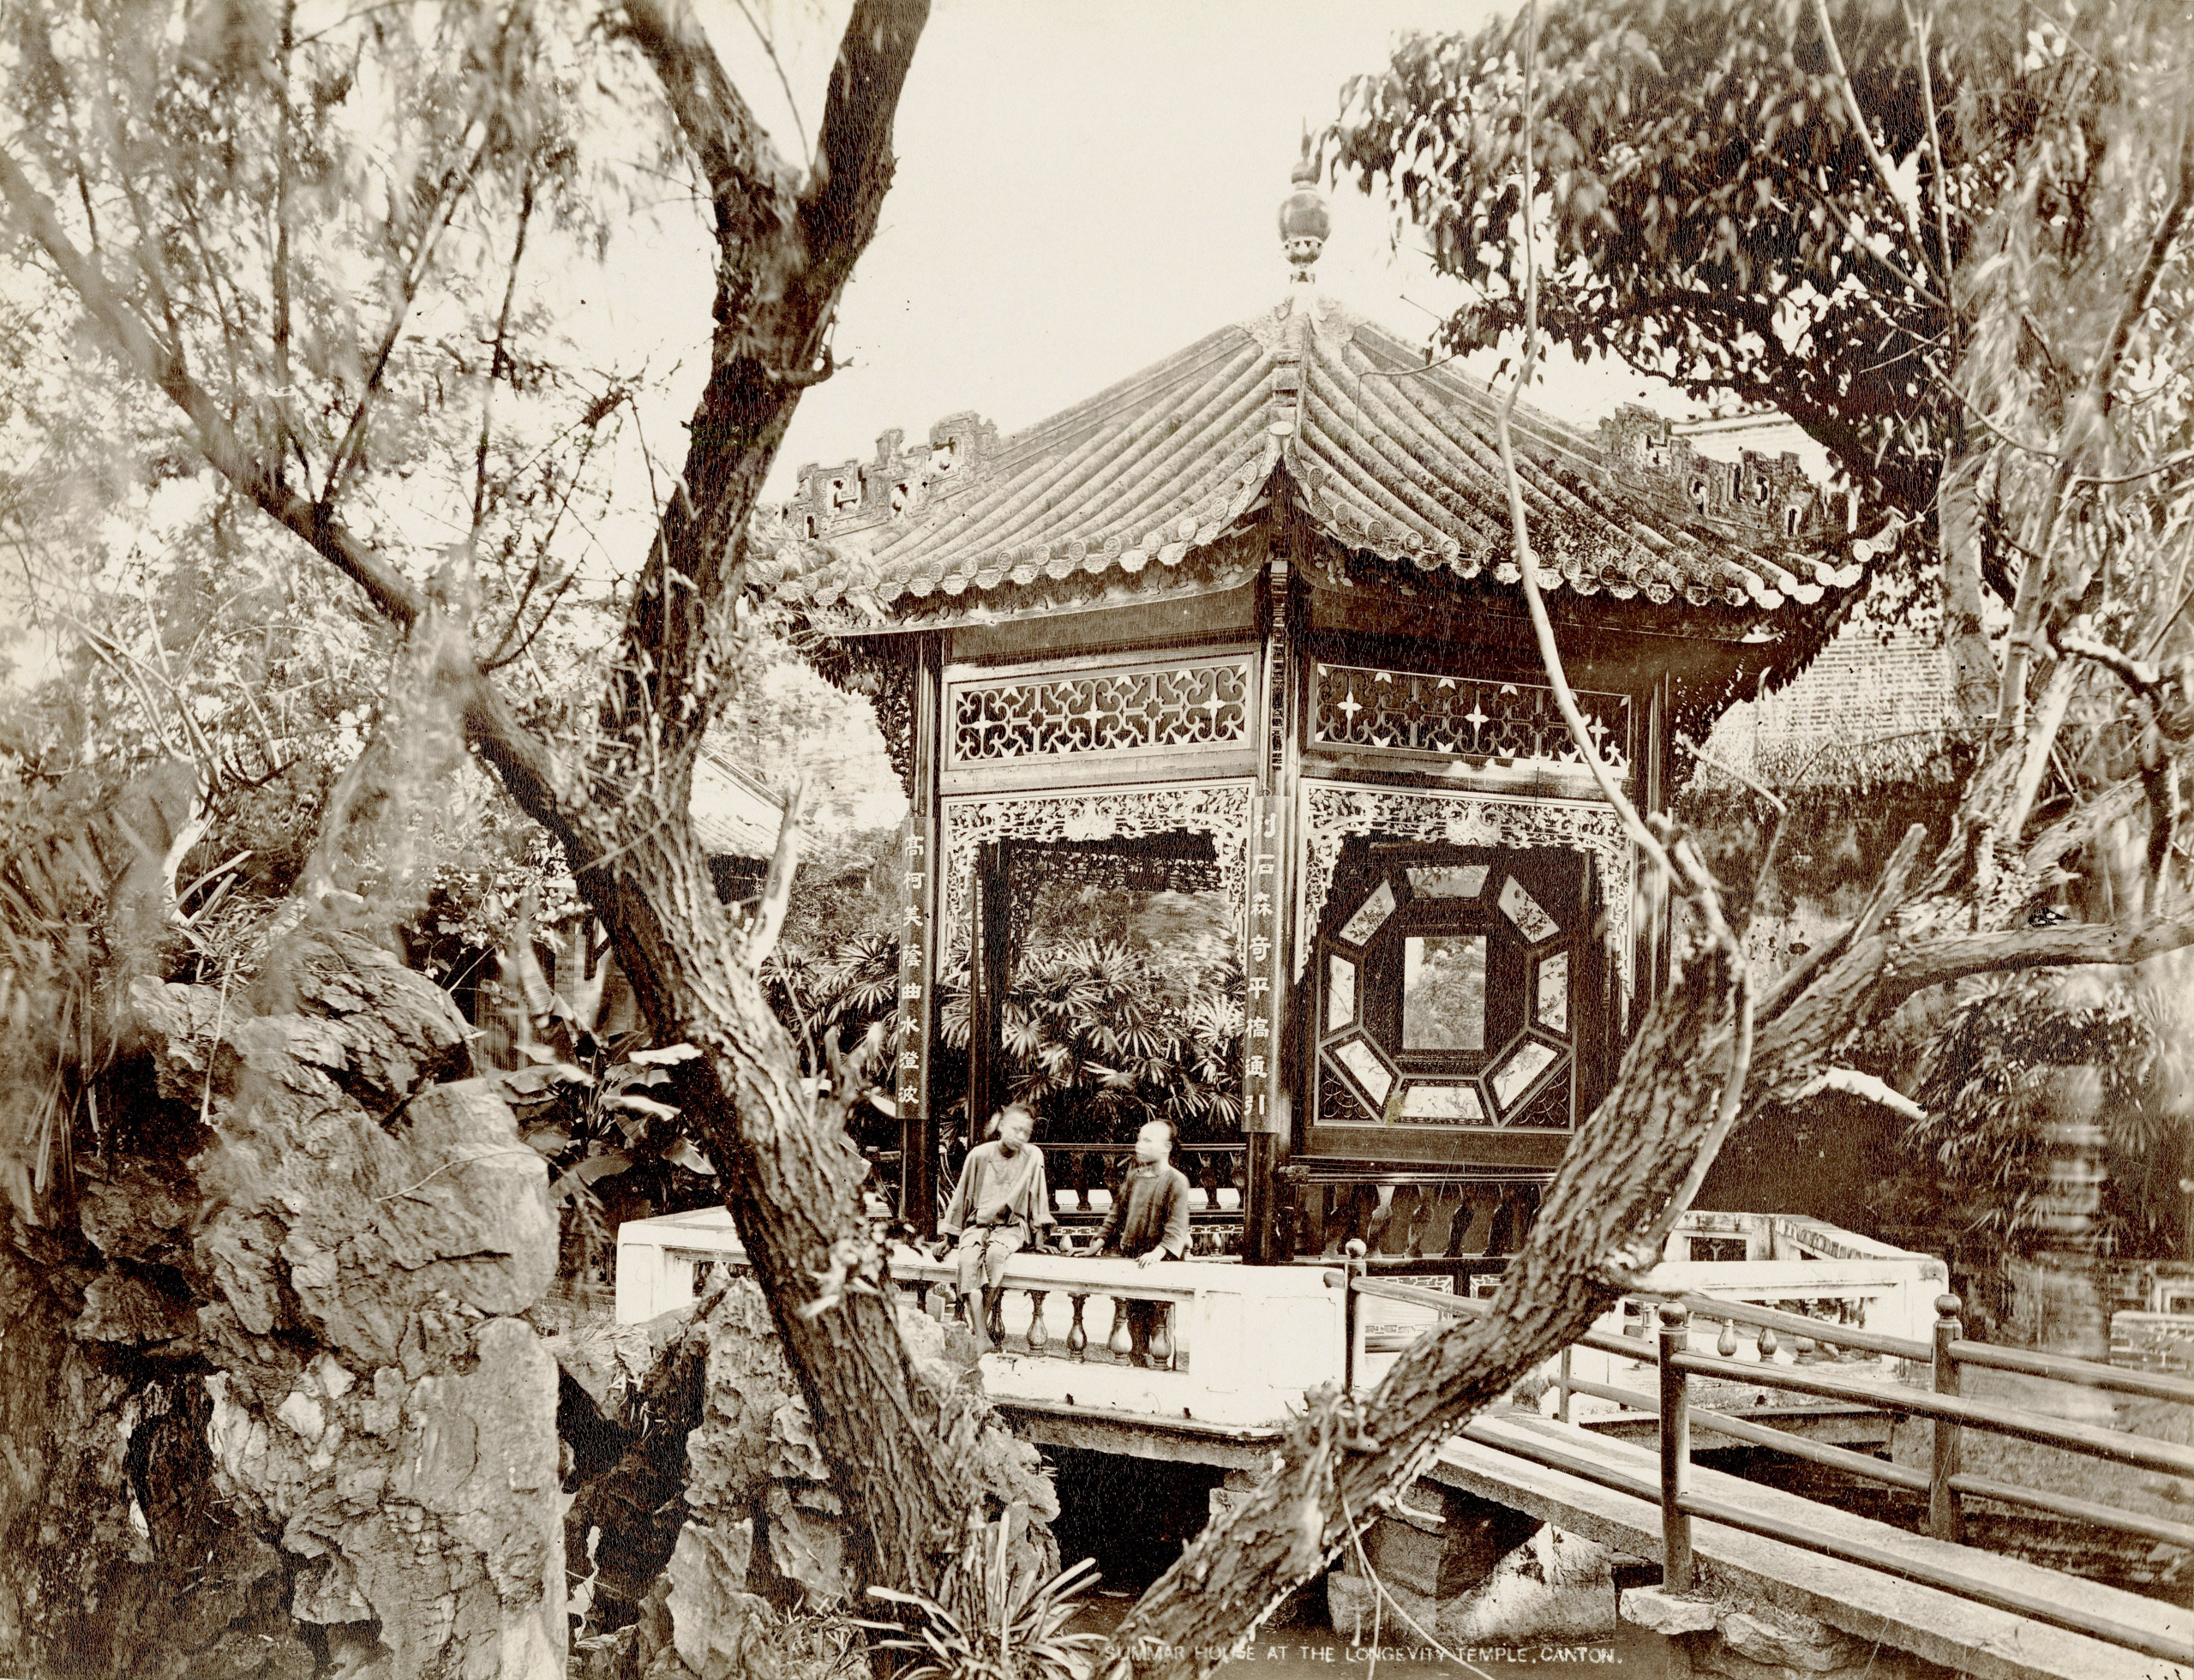 Caption from Stephan Lowentheil Collection. This photograph shows a wealthy merchant's garden and pavilion in Guangzhou. Most Chinese gardens reflect a desire to establish harmony between natural elements and man-made structures. Such gardens often offer space for solitude and contemplation while also serving as the settings for banquets and celebrations.